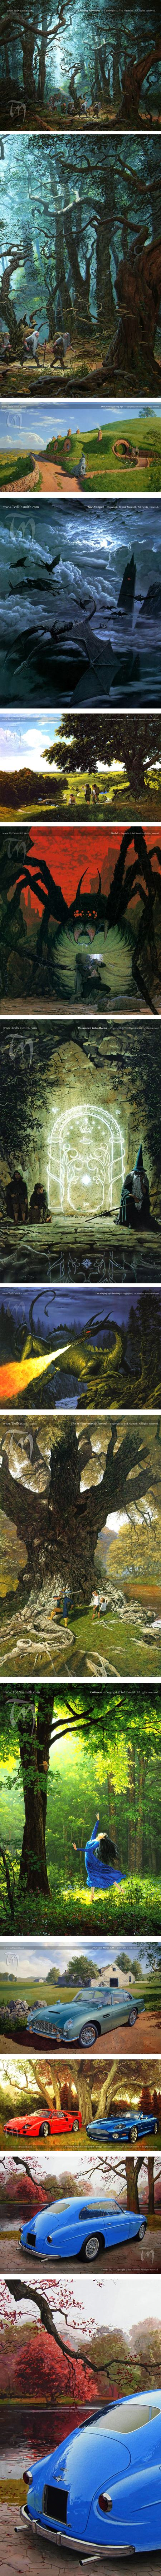 Ted Nasmith, illustrations of  J.R.R. Tolkien's Lord of the Rings and The Hobbit, George R.R. Martin's Game of Thrones, and classic cars